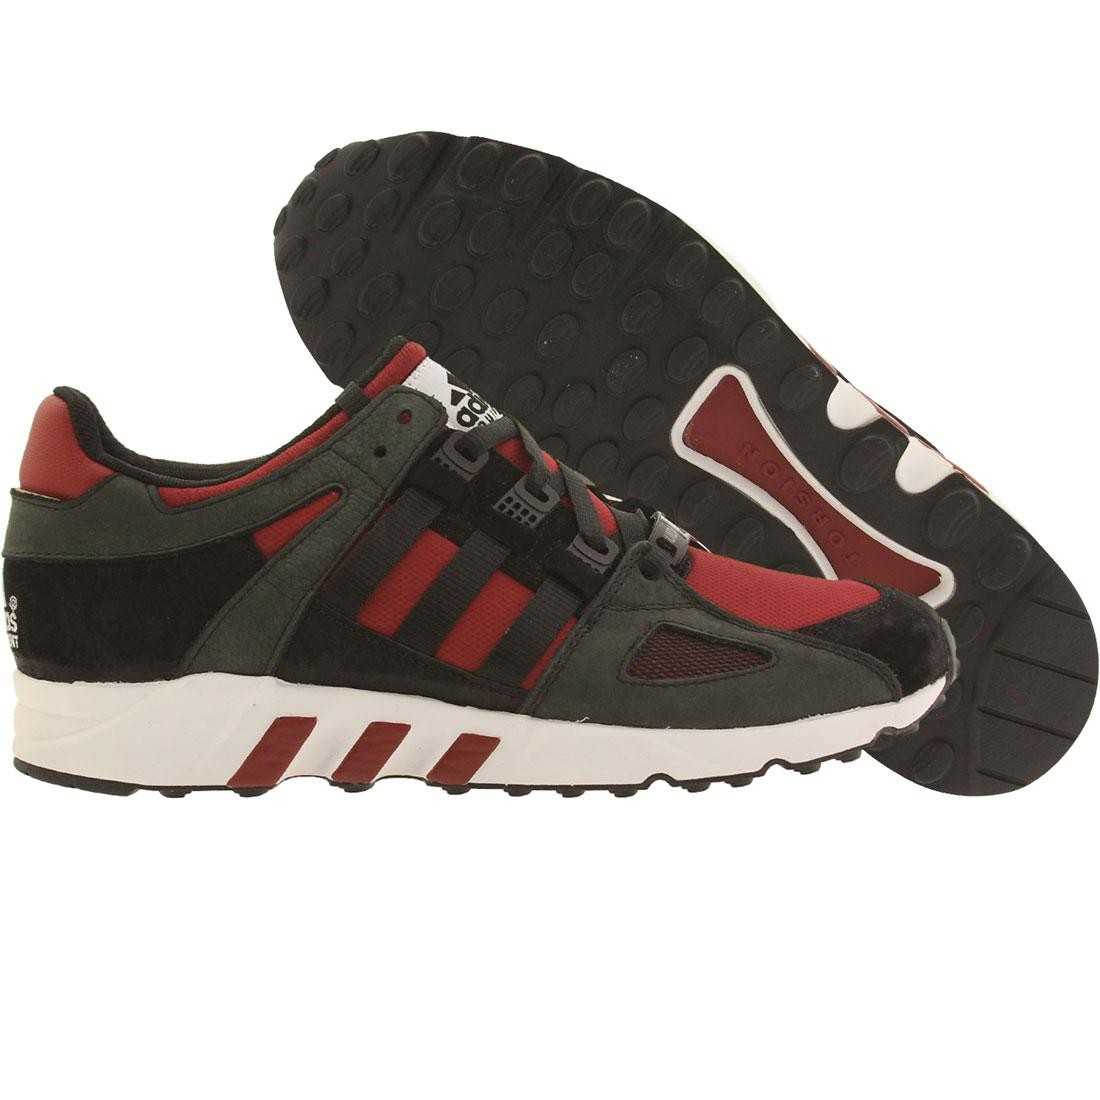 【海外限定】アディダス 靴 スニーカー 【 ADIDAS MEN EQUIPMENT RUNNING GUIDANCE 93 BLACK RUSRED 】